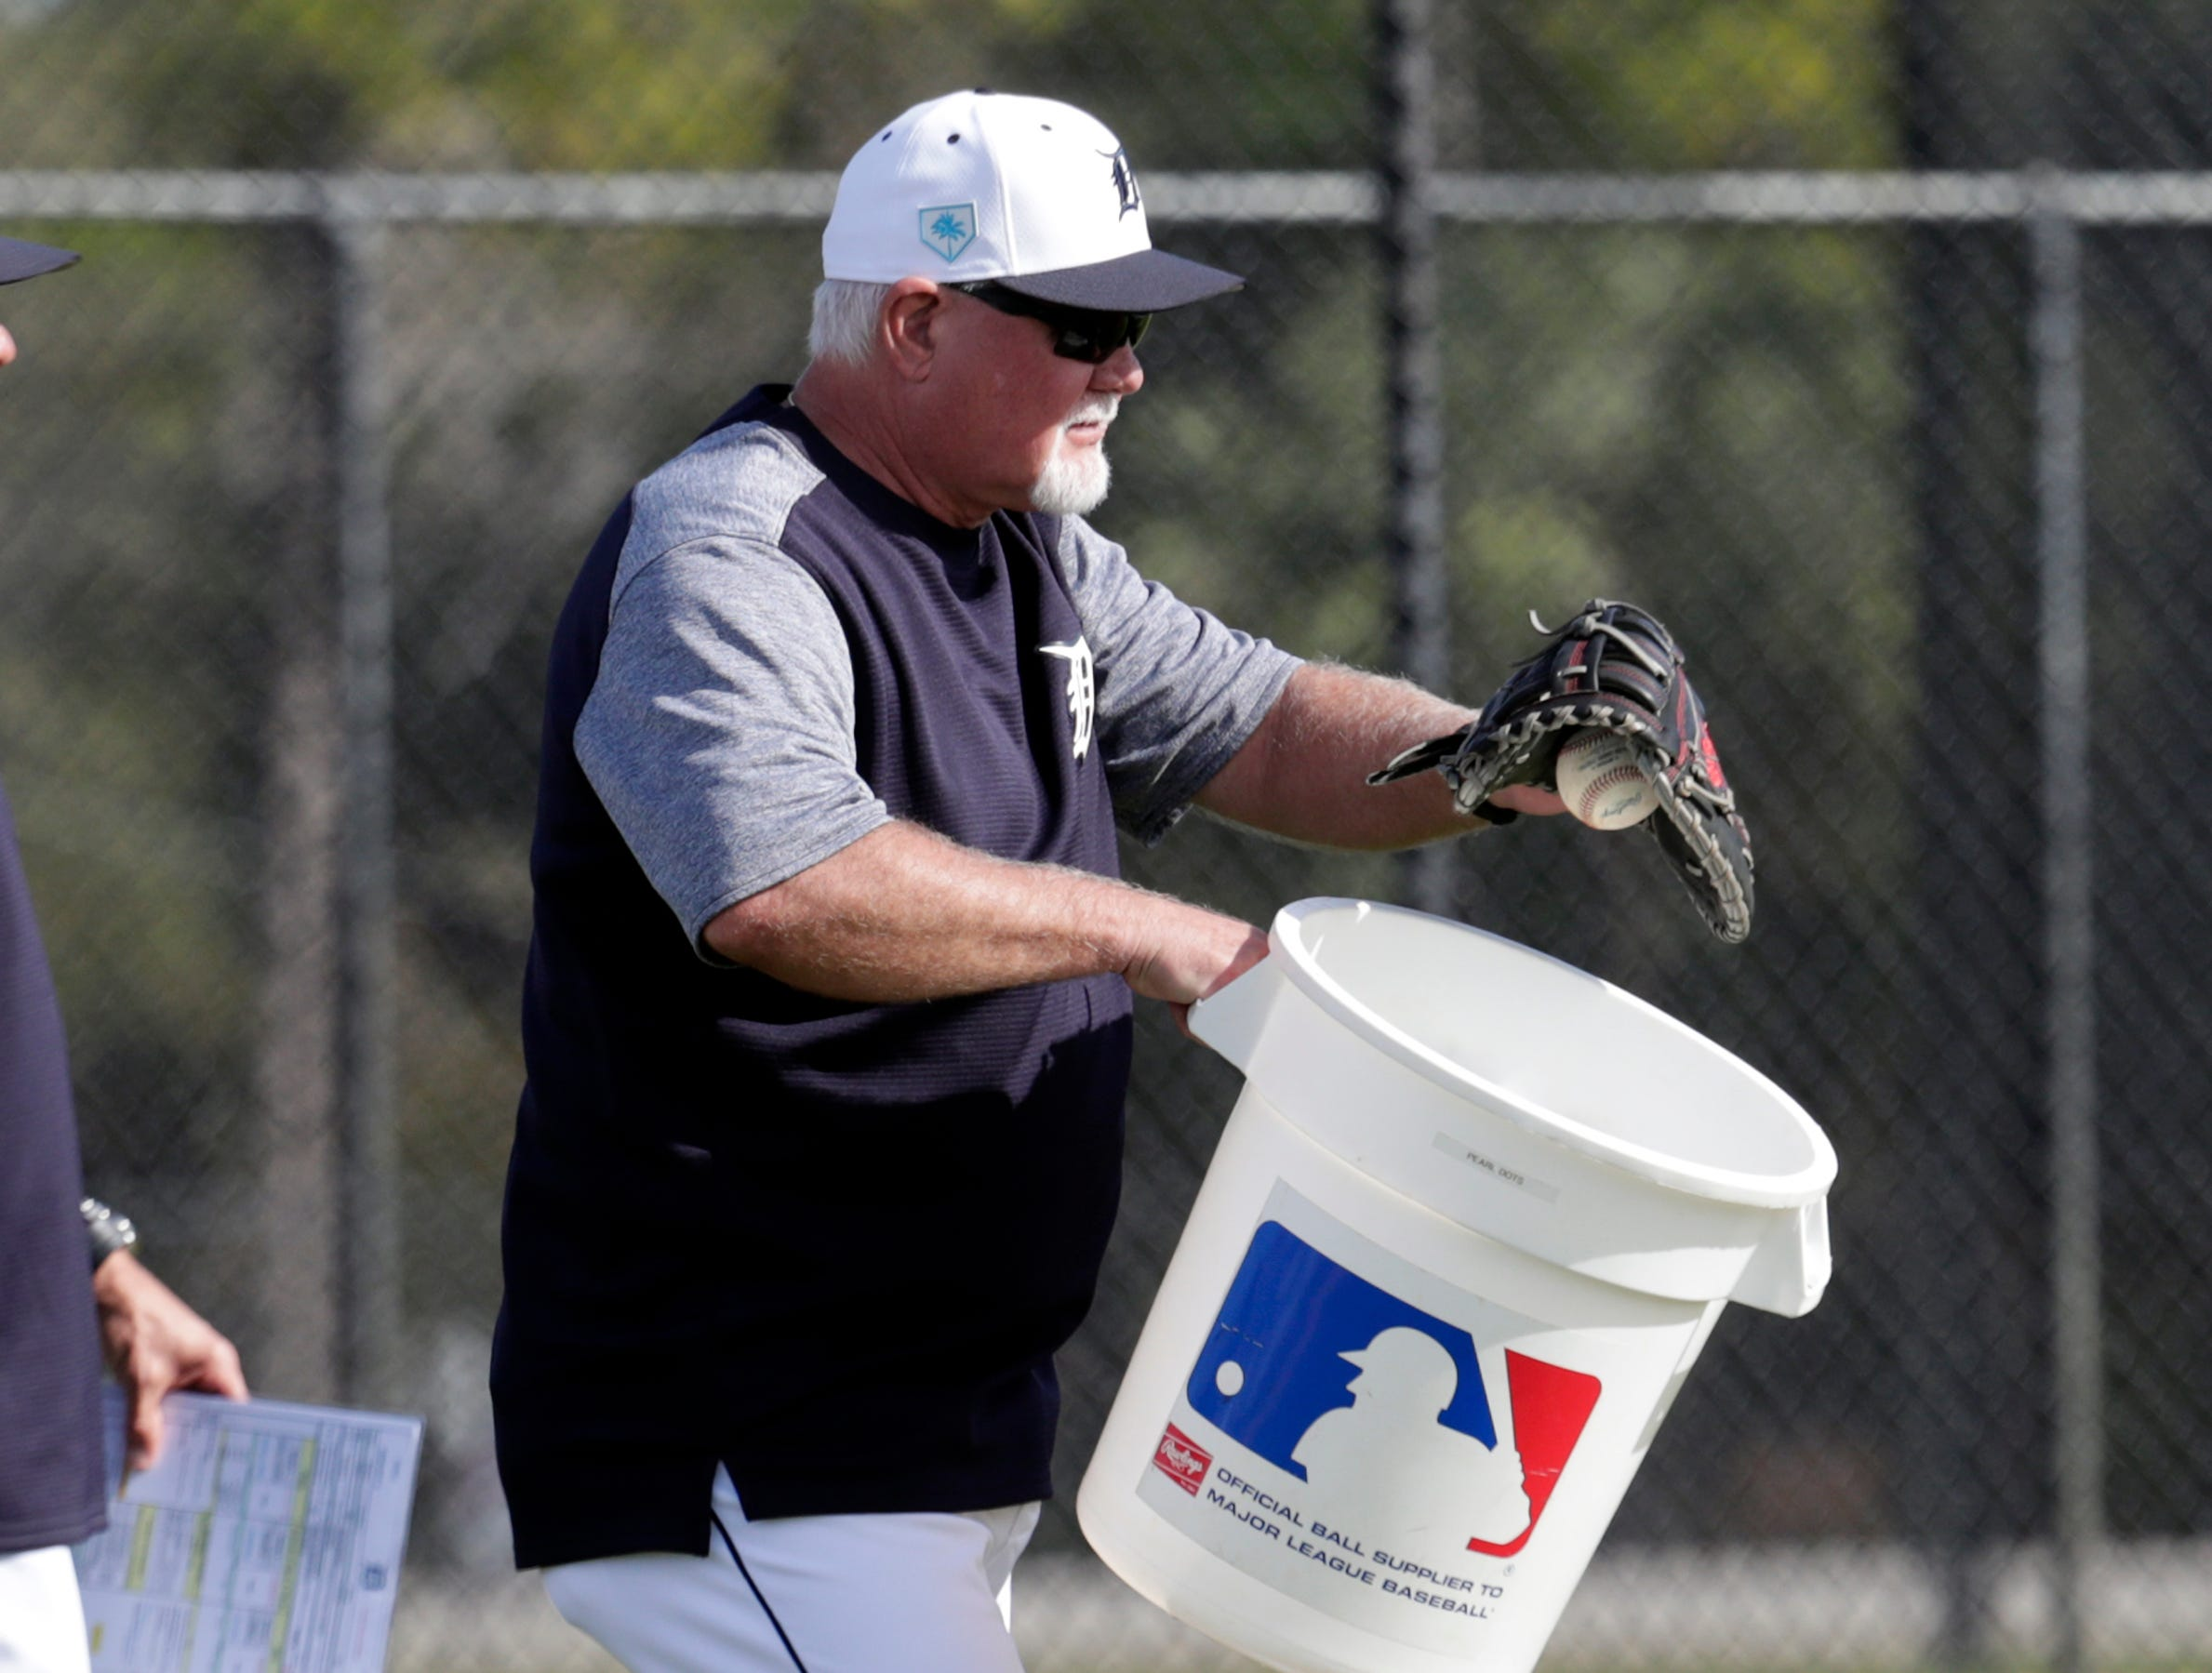 Detroit Tigers manager Ron Gardenhire collects balls as players do drills at the Detroit Tigers spring training baseball facility, Friday, Feb. 15, 2019, in Lakeland, Fla.